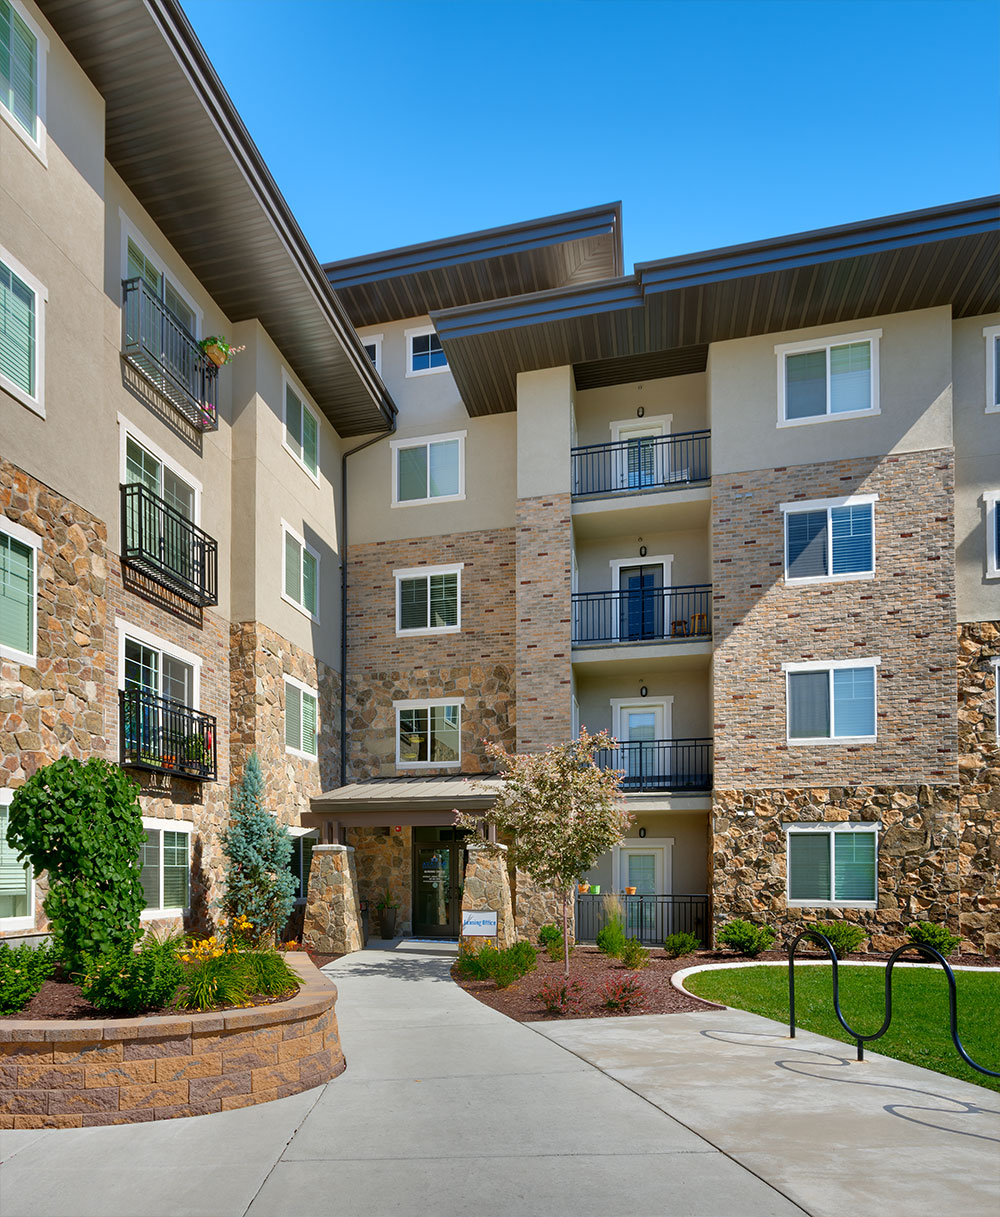 Senior-Apartments-Utah-Architecture-Avalon-Senior-Living